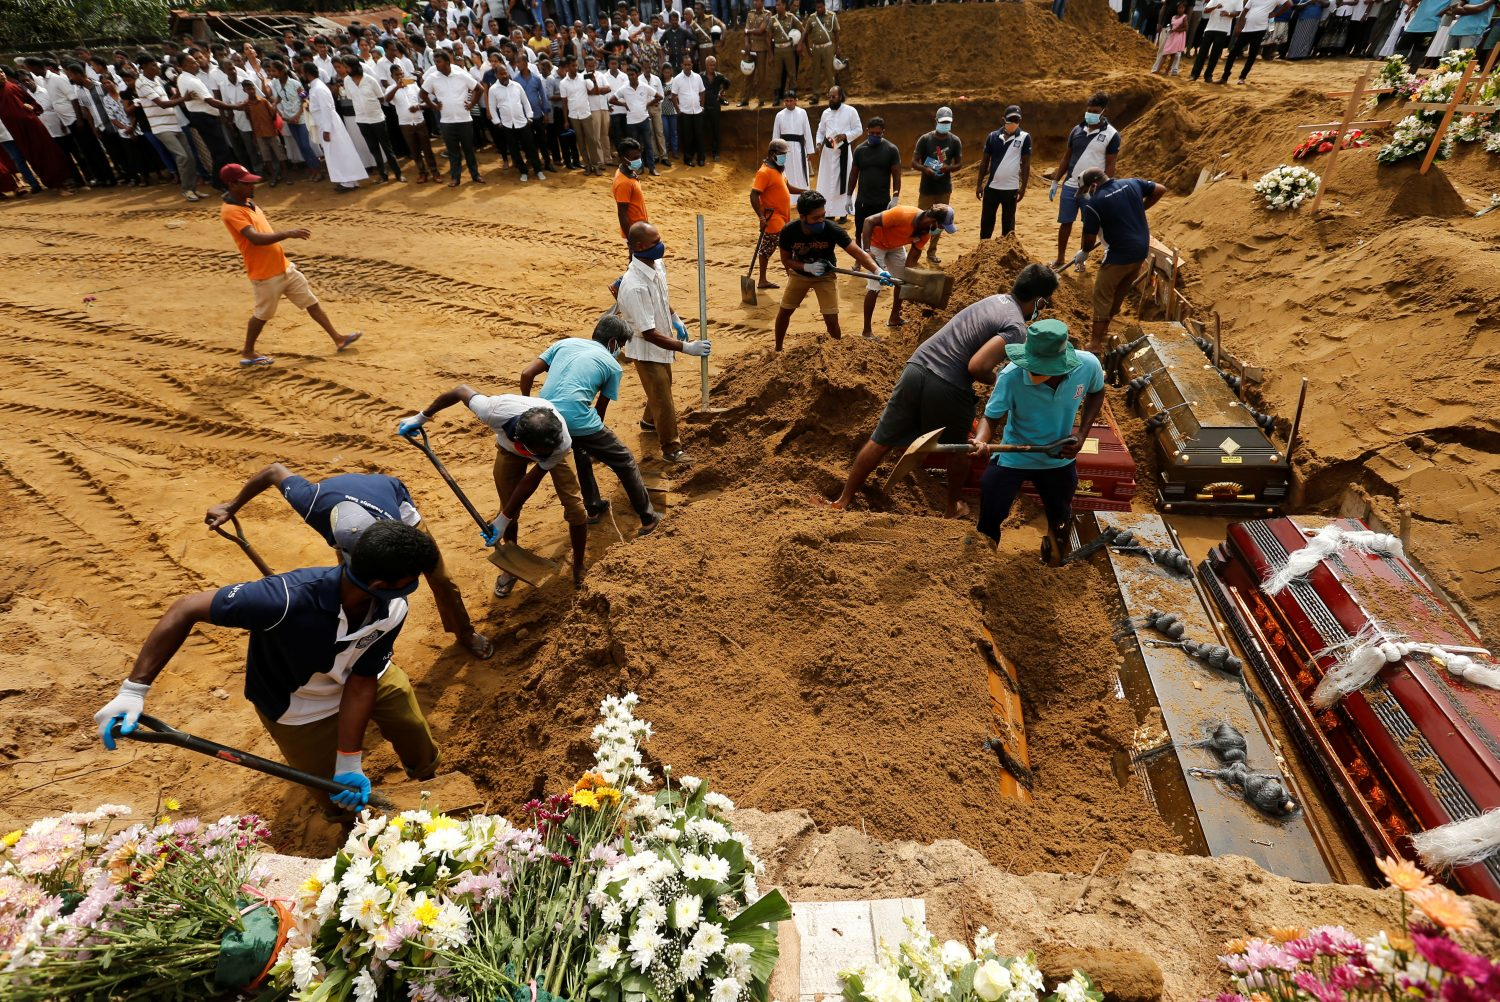 Coffins are laid in the ground during a mass burial for victims at a cemetery near St Sebastian's Church in Negombo, three days after a string of suicide bomb attacks on churches and luxury hotels across the island on Easter Sunday, in Sri Lanka April 24, 2019. REUTERS/Thomas Peter